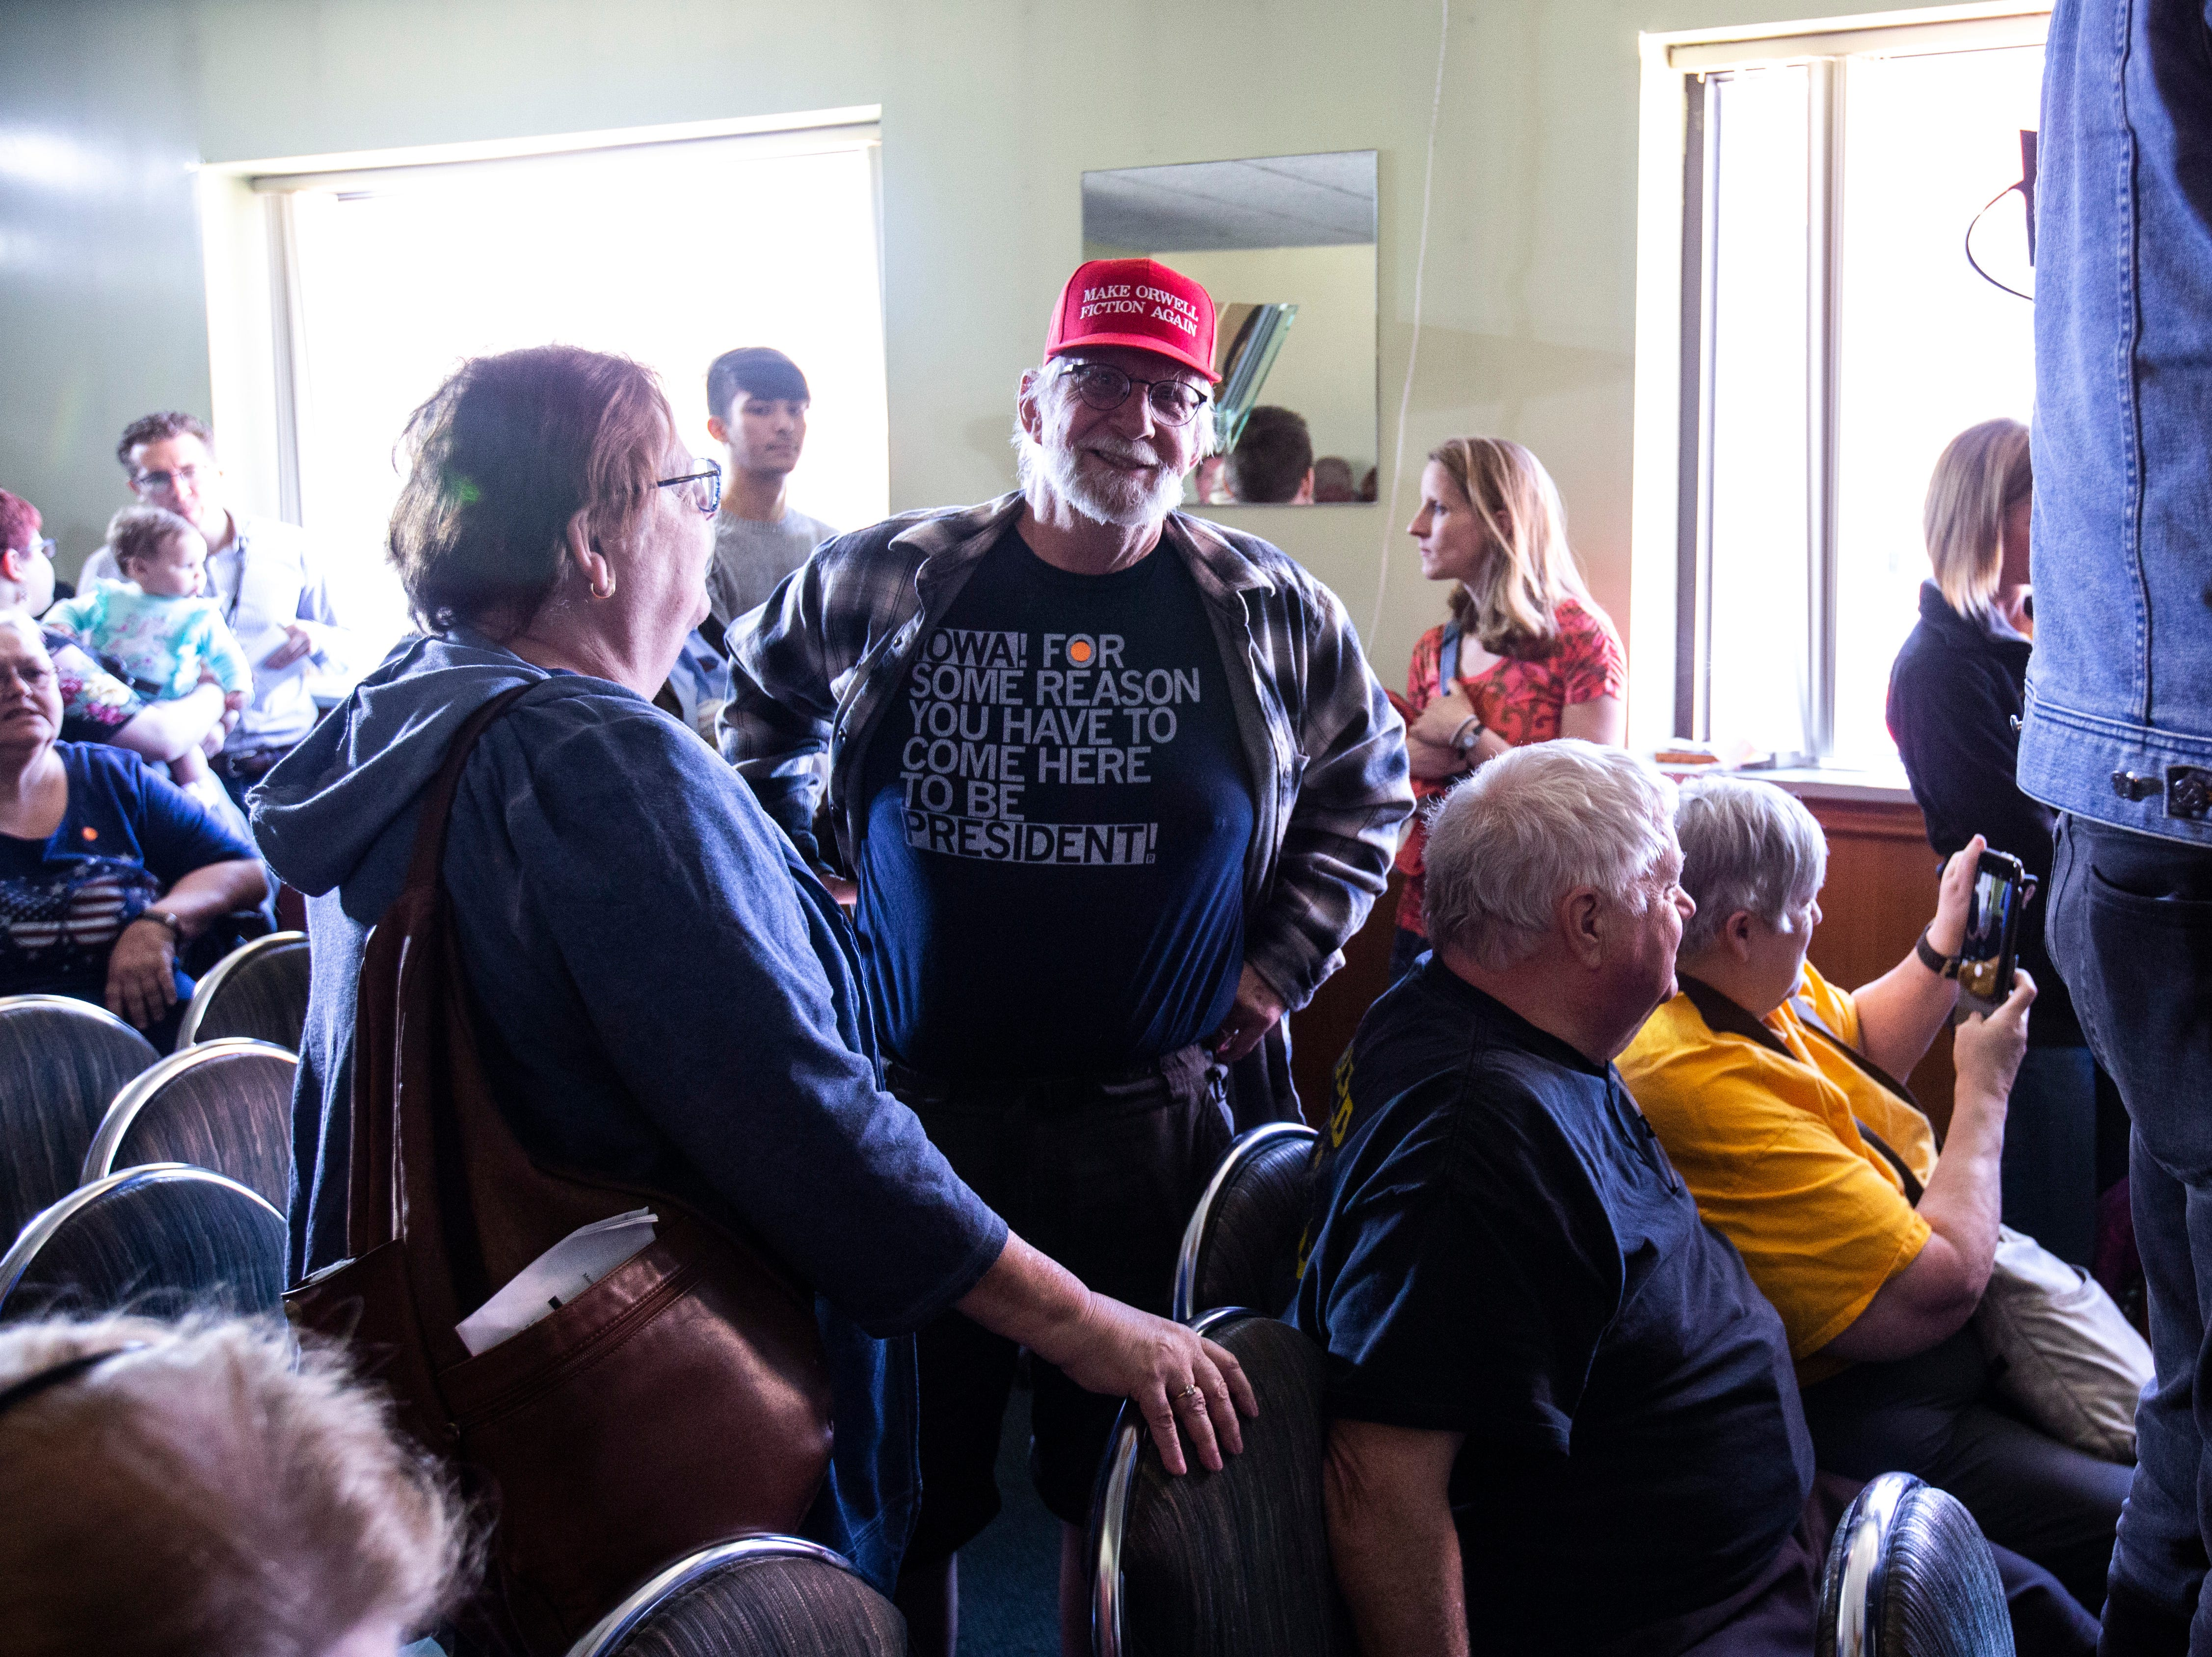 """Pieter Breitner, of Coralville, poses while wearing a red hat that reads, """"Make Orwell fiction again,"""" and a shirt designed by Ragyun that reads, """"Iowa! For some reason you have to come here to be president!"""" while waiting to take a photo with U.S. Sen. Elizabeth Warren, D-Mass., after a campaign event, Friday, April 26, 2019, at the Tipton Family Restaurant in Tipton, Iowa."""